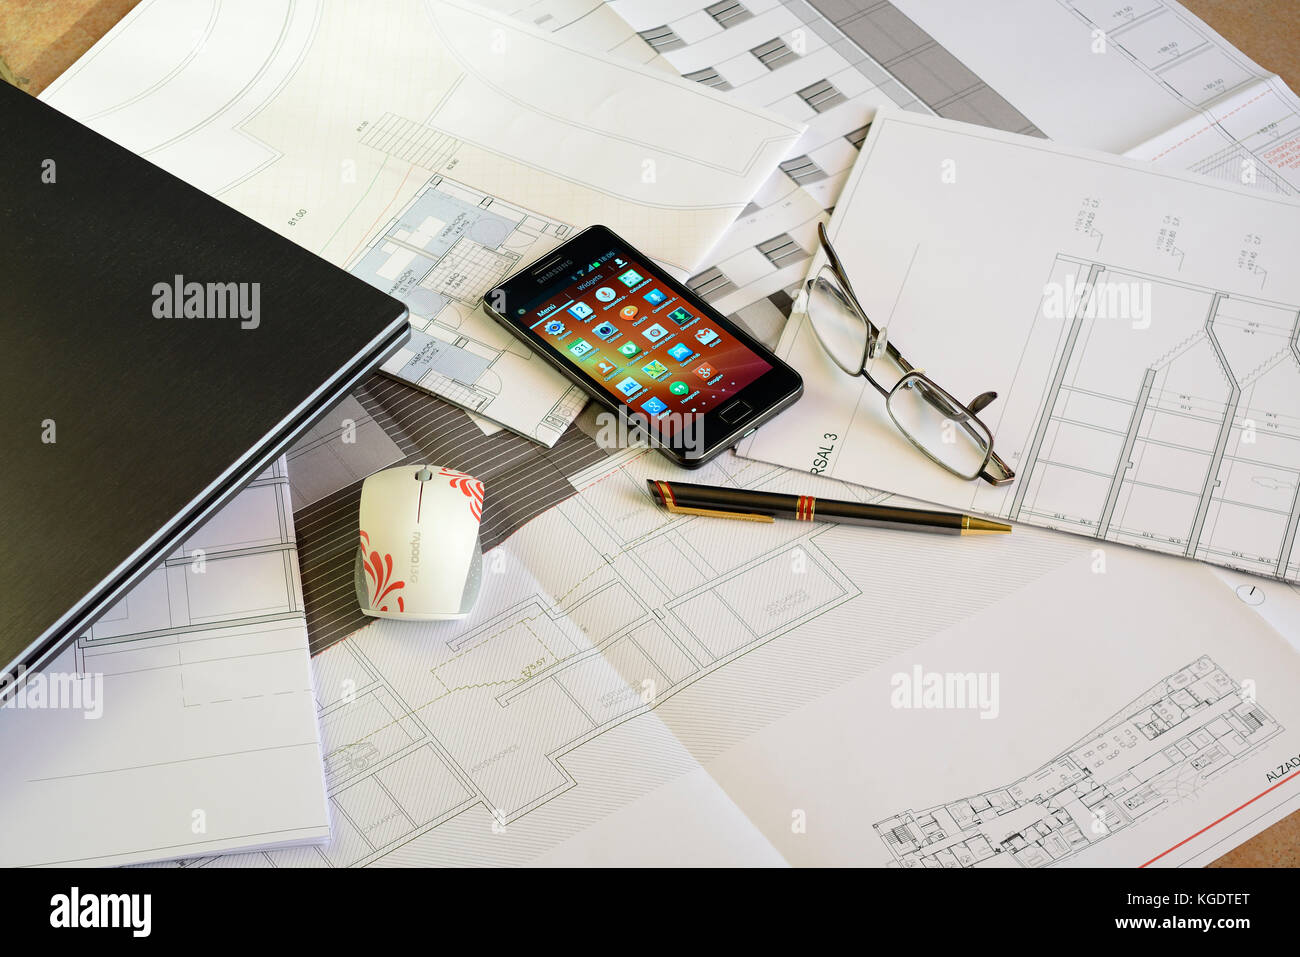 Smartphone, glasses, Pen, Laptop and Mouse over Architect plans Stock Photo